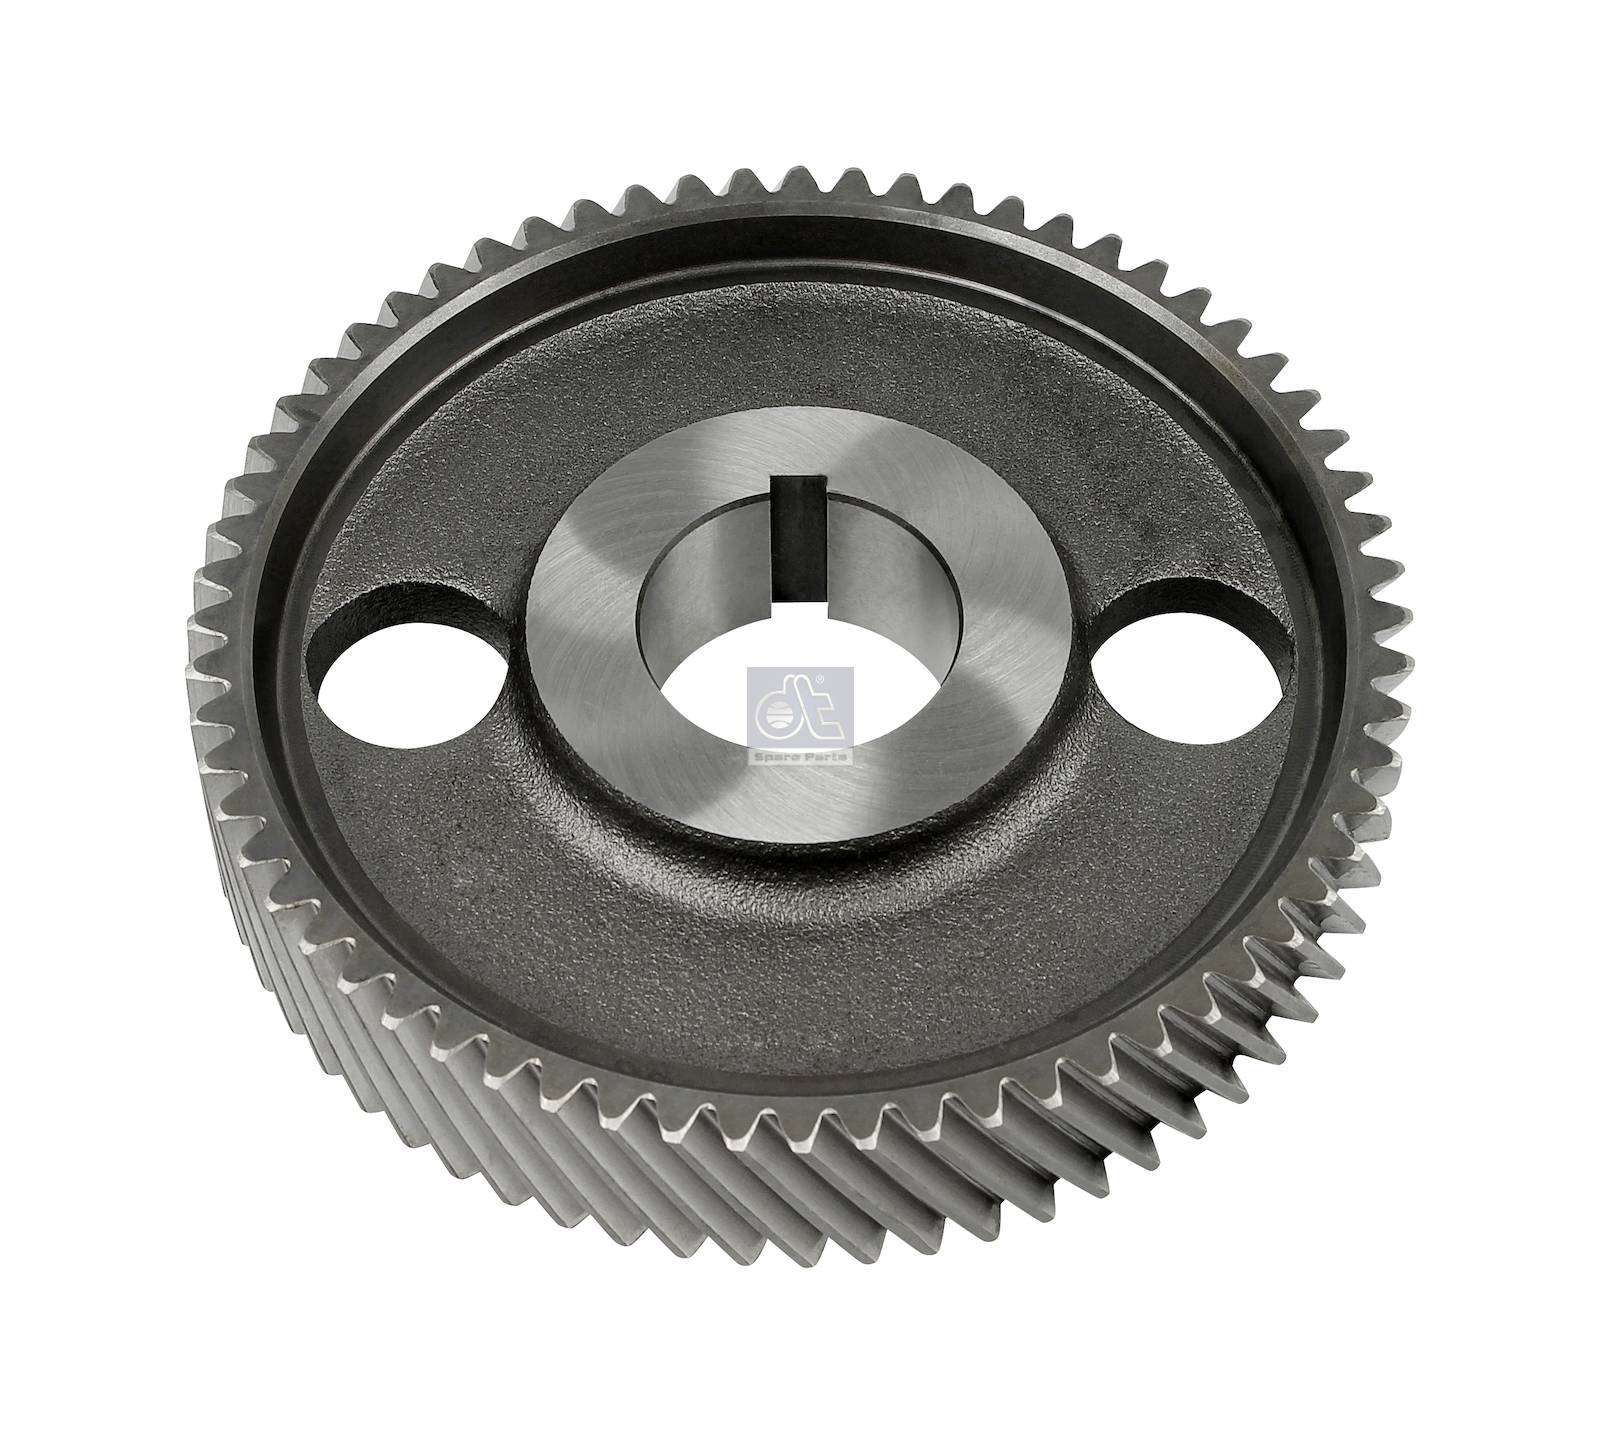 Adjustable Camshaft Gears – Perfect for Engine Tuning